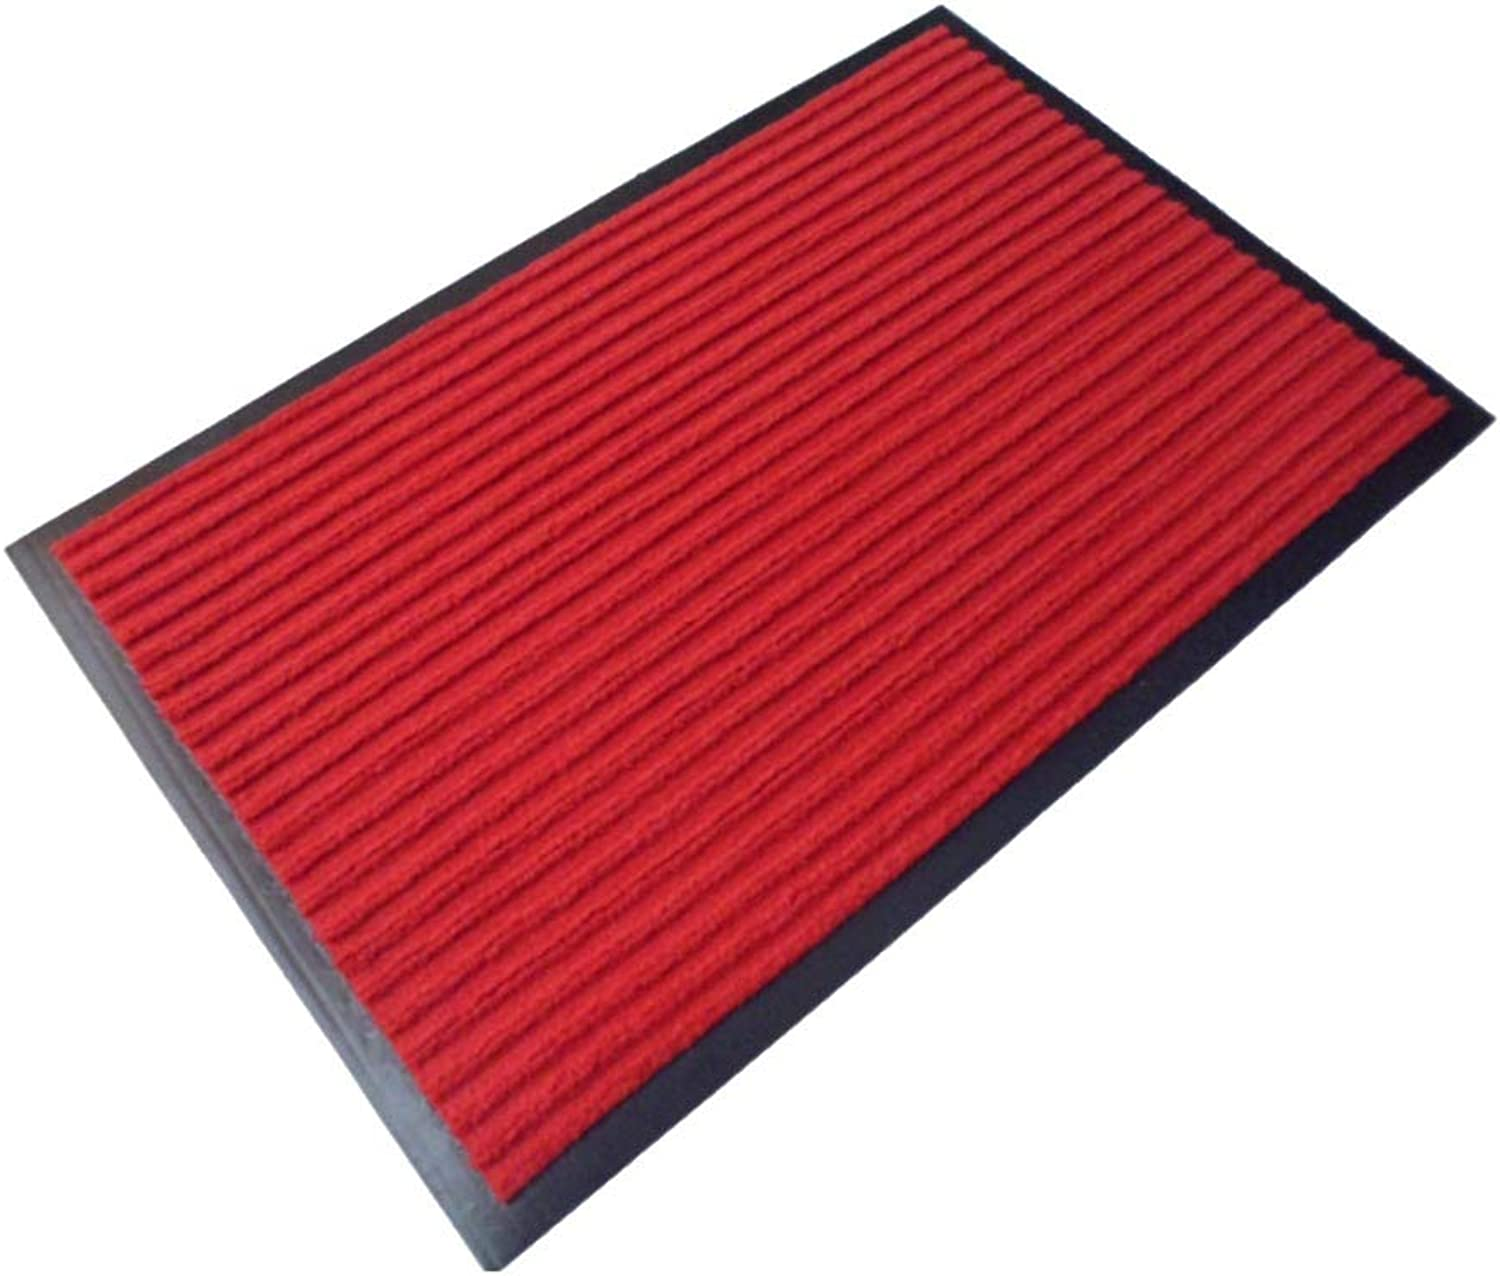 Door mat,Indoor Outdoor mats Front Entrance Door mat Carpet Door mat Bedroom Bathroom Non-Slip Kitchen Rug-red 60x90cm(24x35inch)